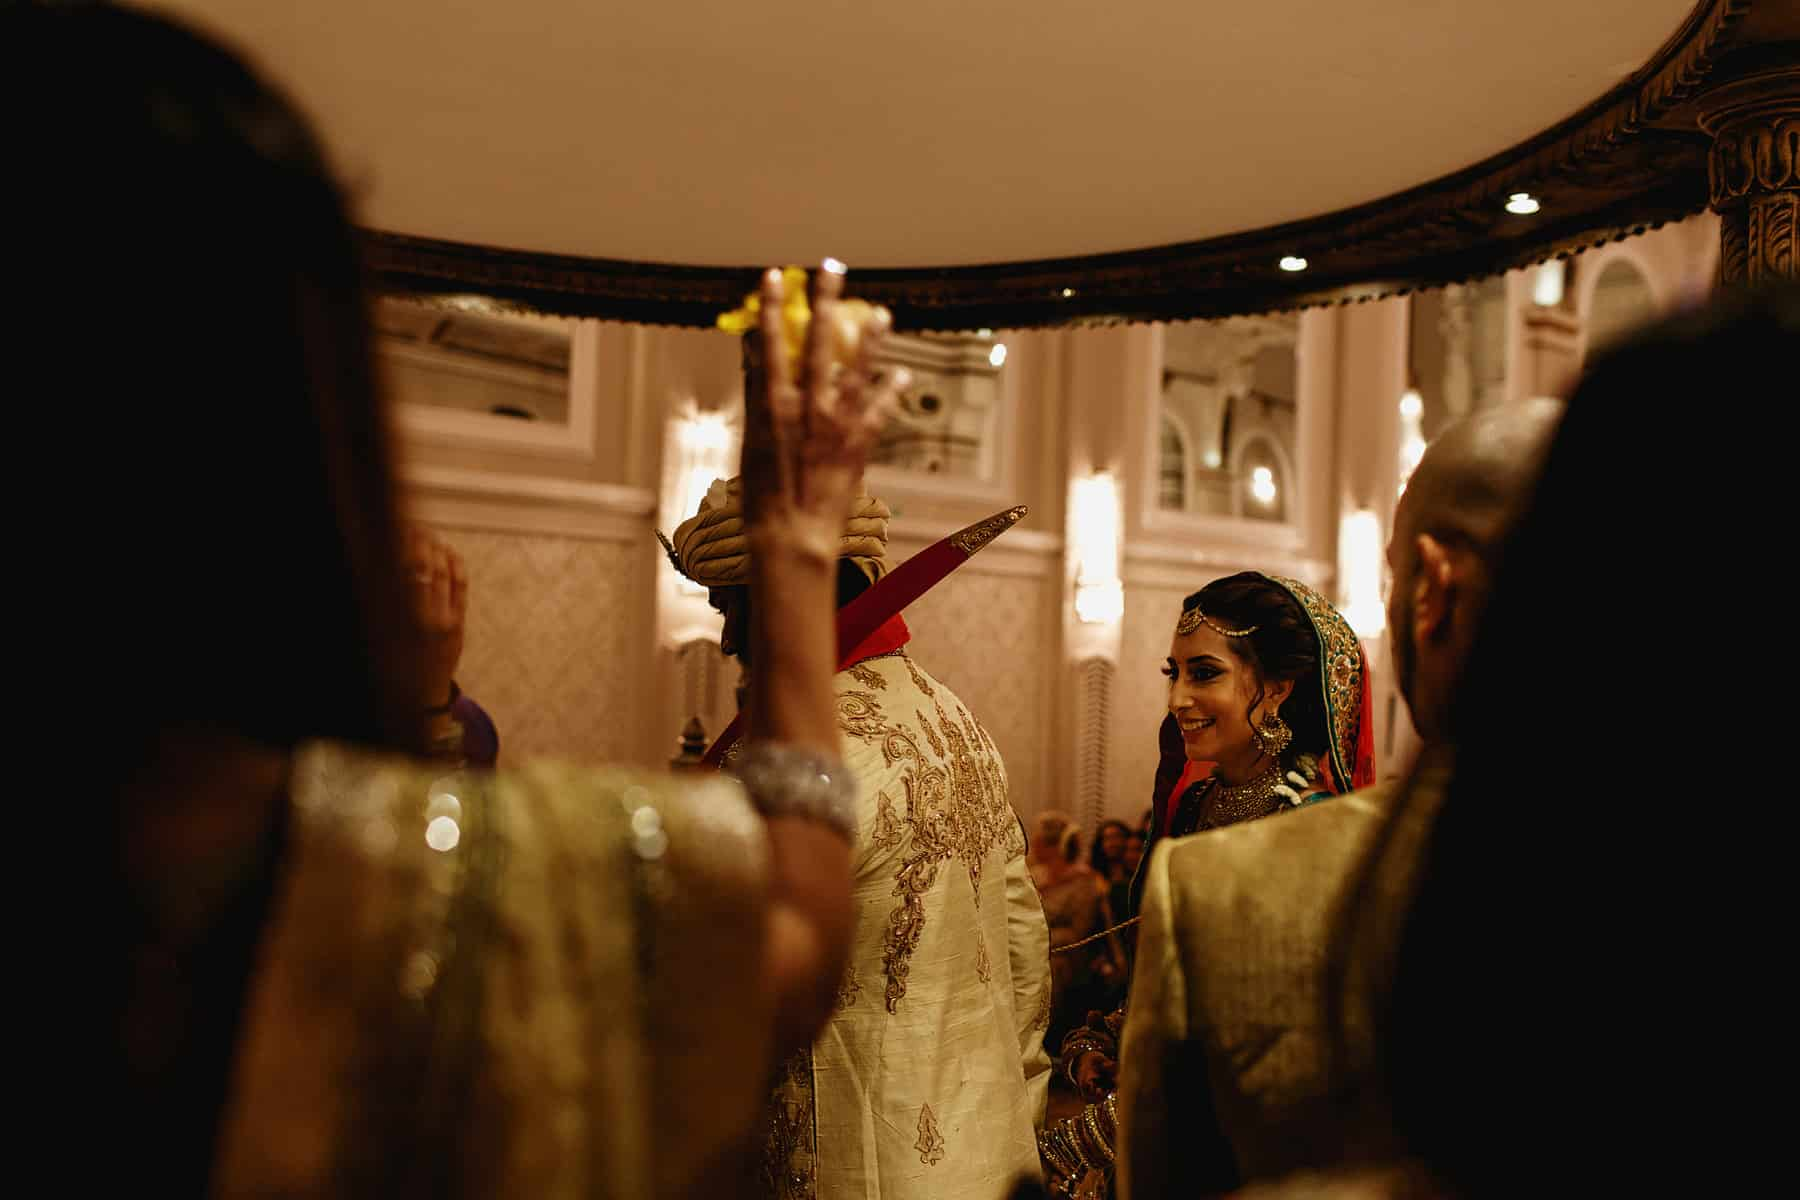 grand county hindu singles Singles events offers the best ways to meet singles and where to meet new single people visit our website for more information on singles near you.